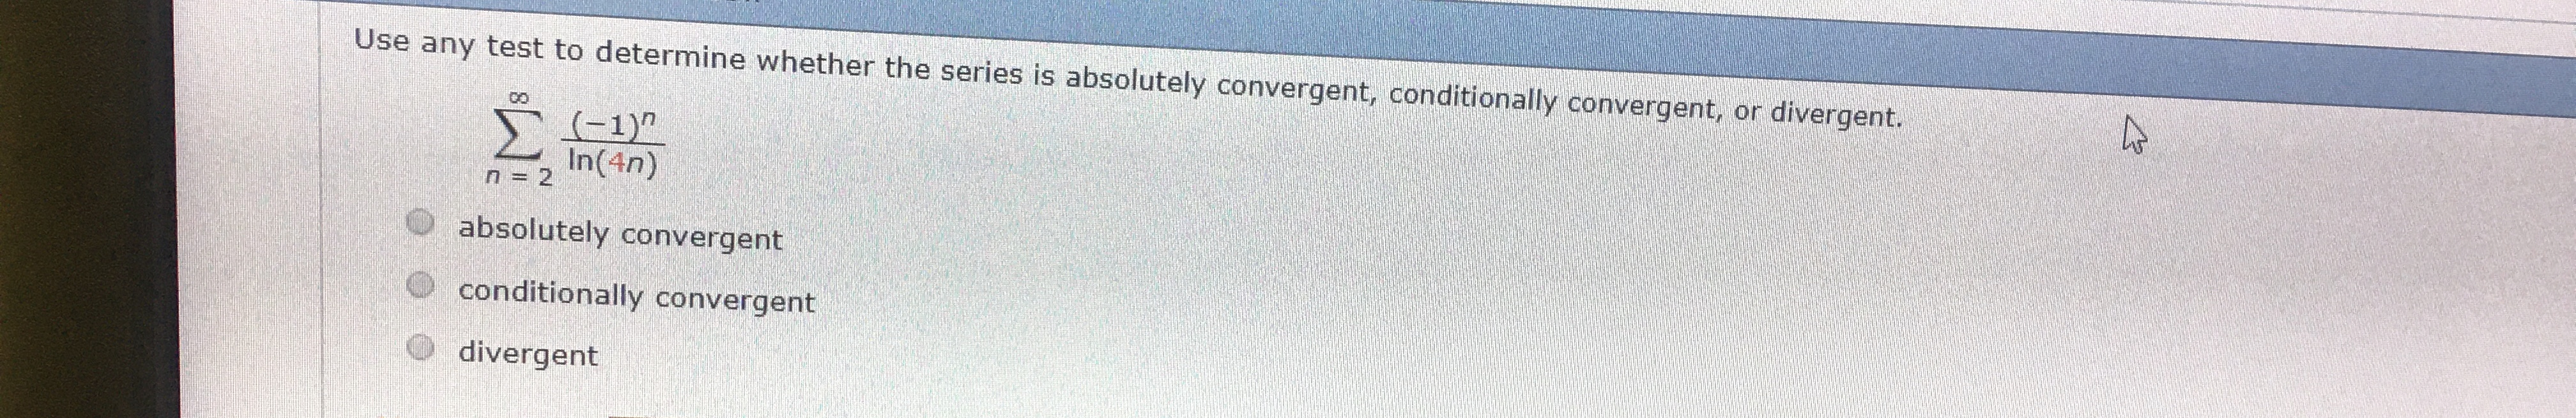 """Use any test to determine whether the series is absolutely convergent, conditionally convergent, or divergent. CO (-1)"""" In(4n) Σ n=2 O absolutely convergent conditionally convergent divergent"""